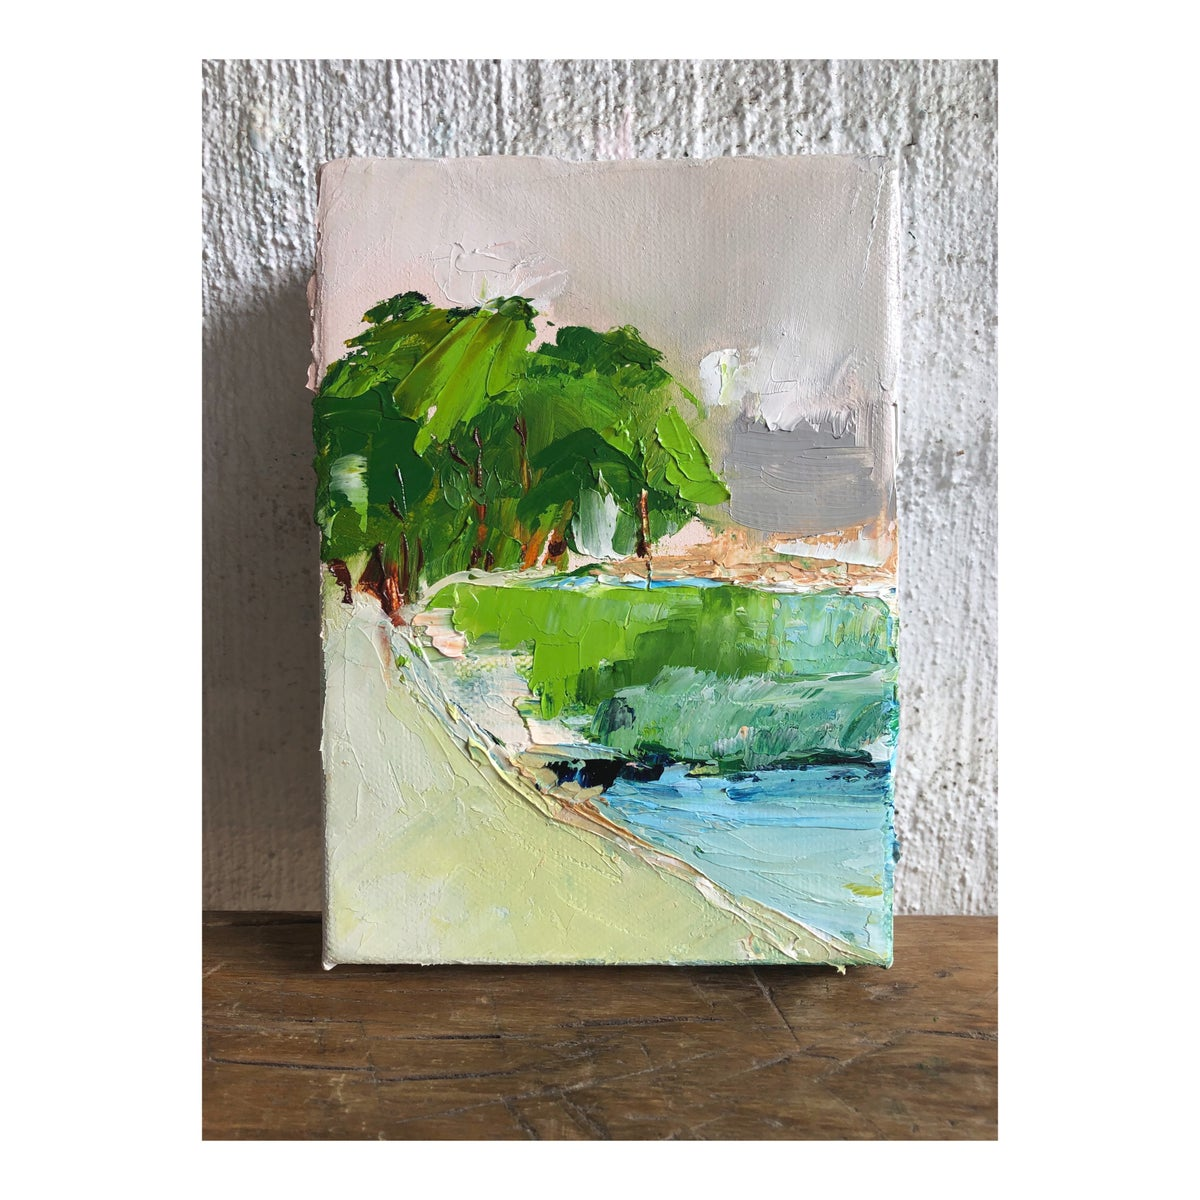 Image of 'Coastal Drive' 2019 Oil on canvas